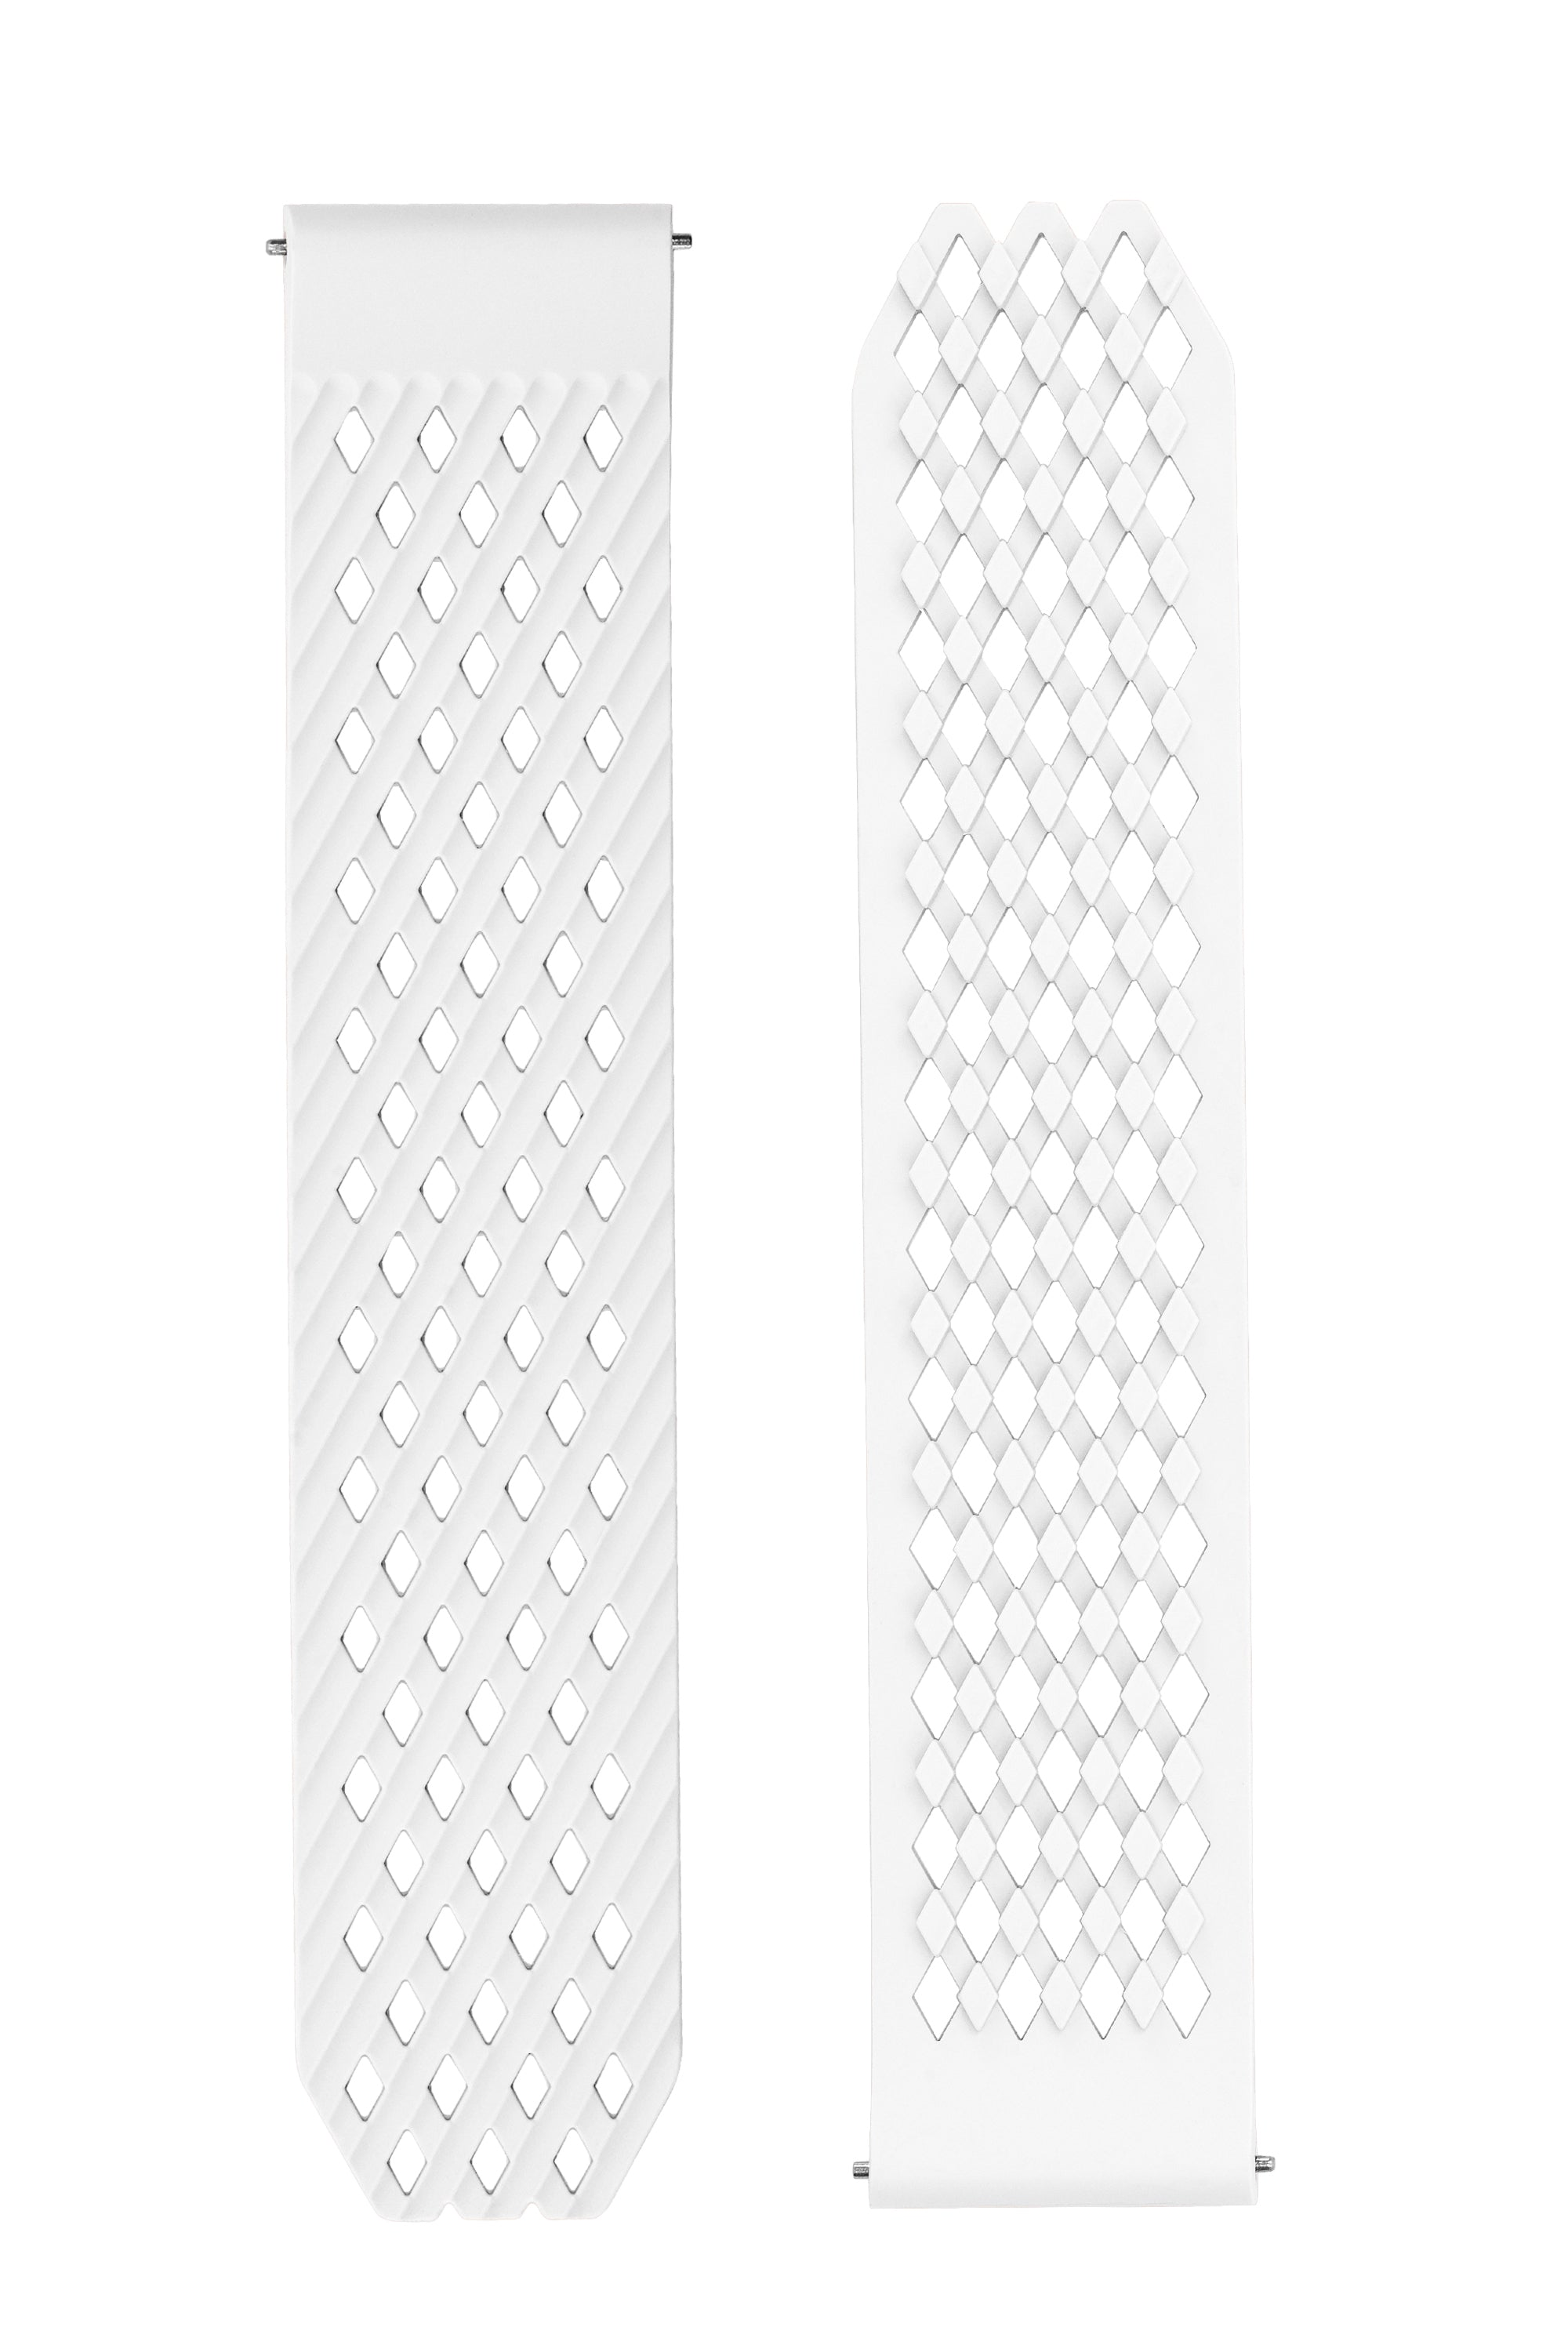 Noomoon LABB Interlocking Quick-Release Watch Strap in WHITE